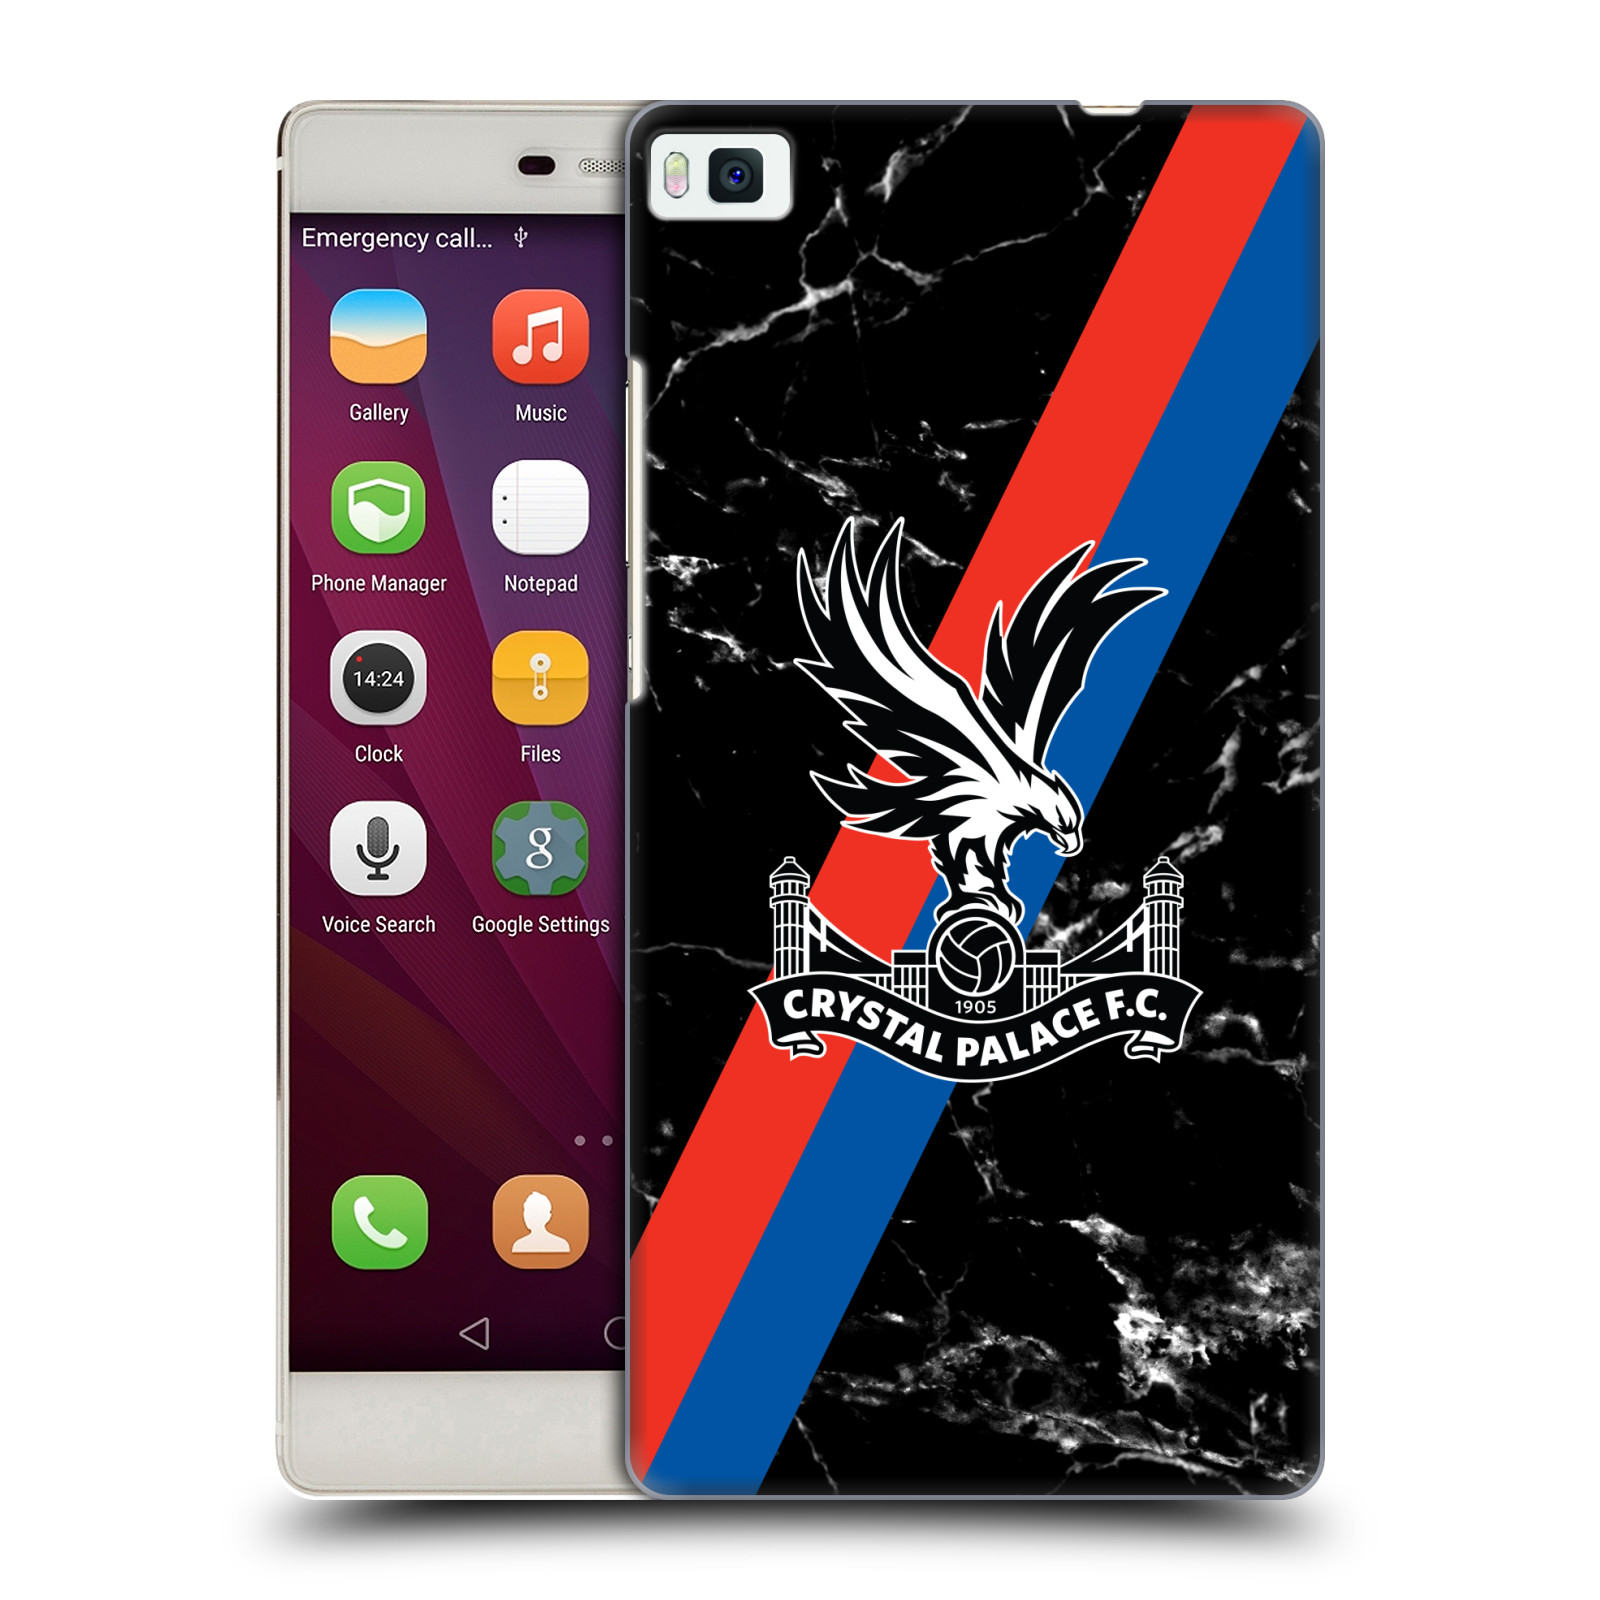 OFFICIAL-CRYSTAL-PALACE-FC-2017-18-MARBLE-HARD-BACK-CASE-FOR-HUAWEI-PHONES-1